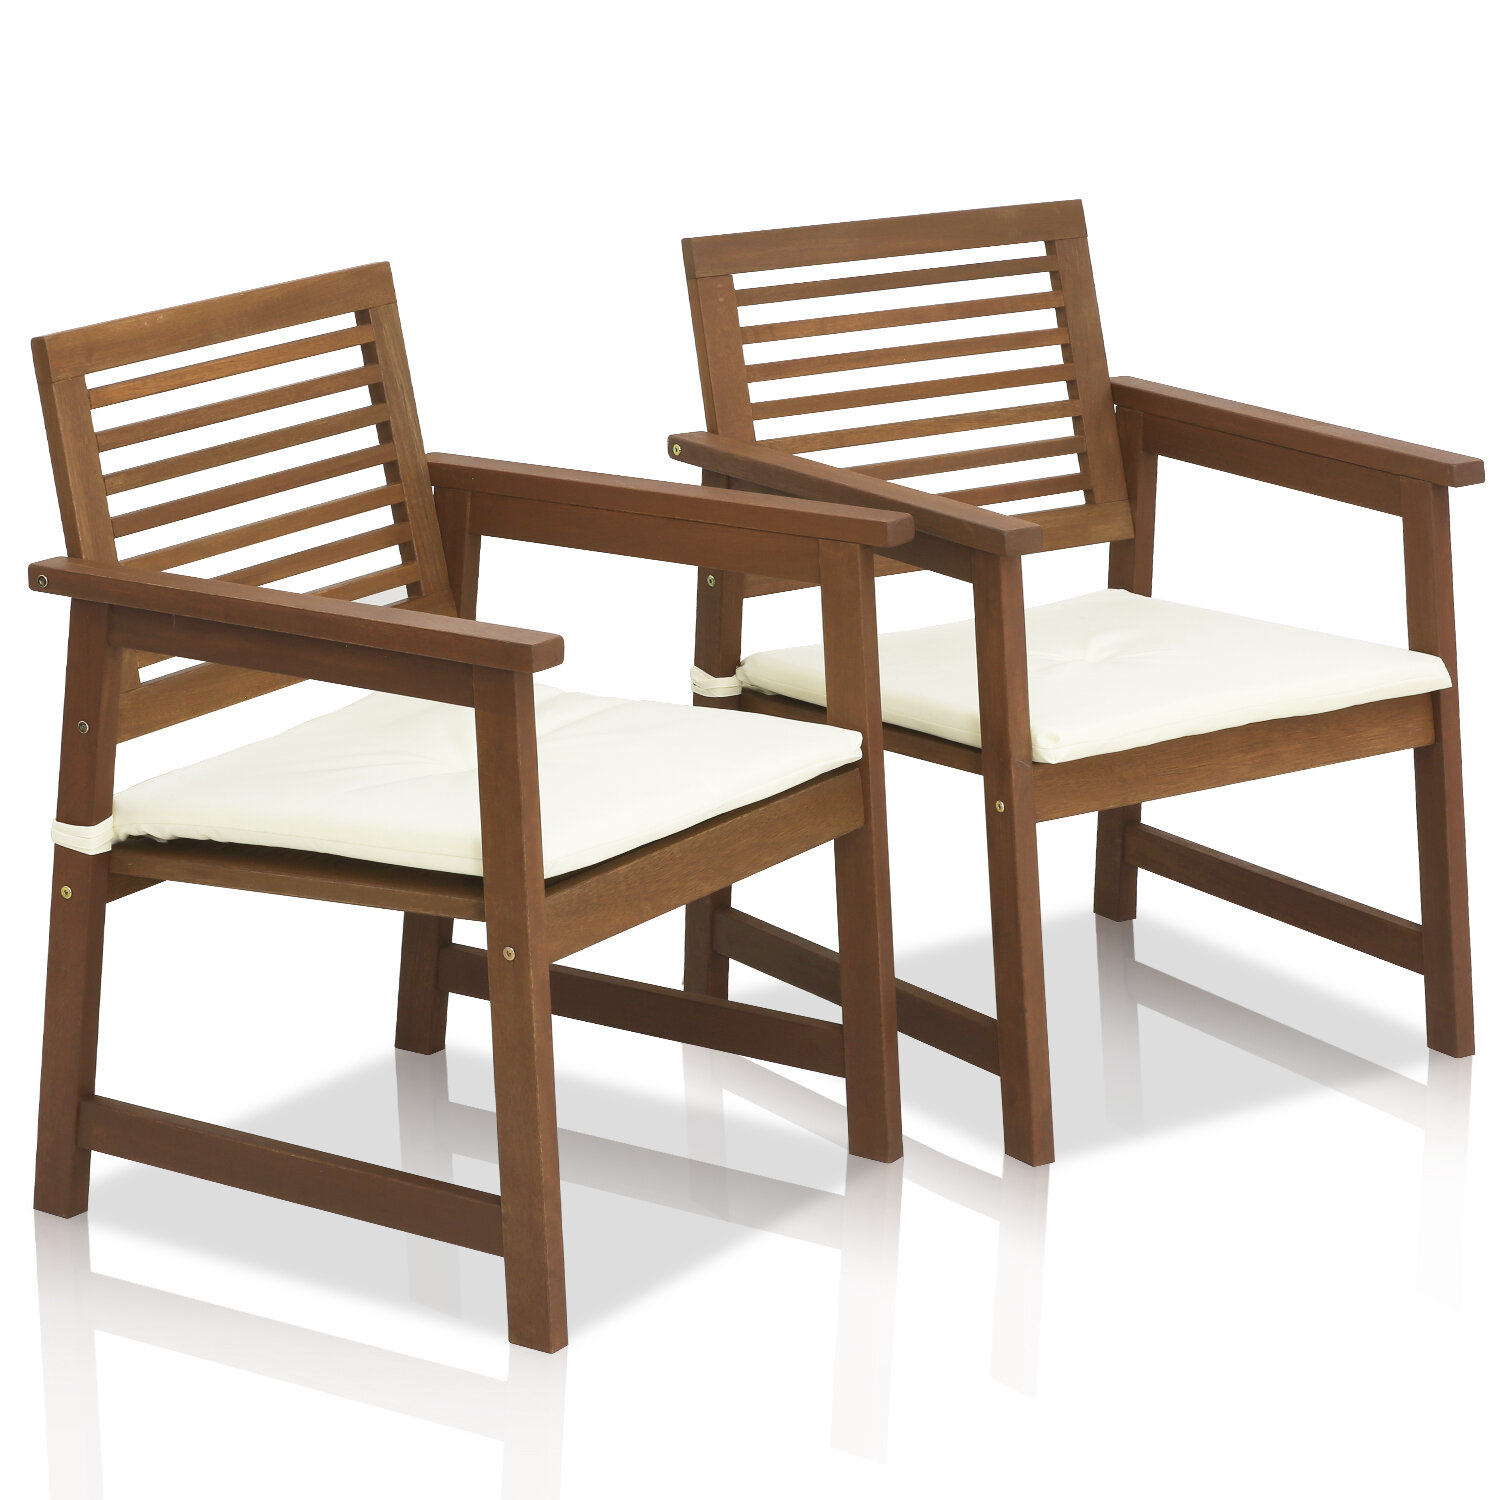 Arianna Patio Chairs With Cushions